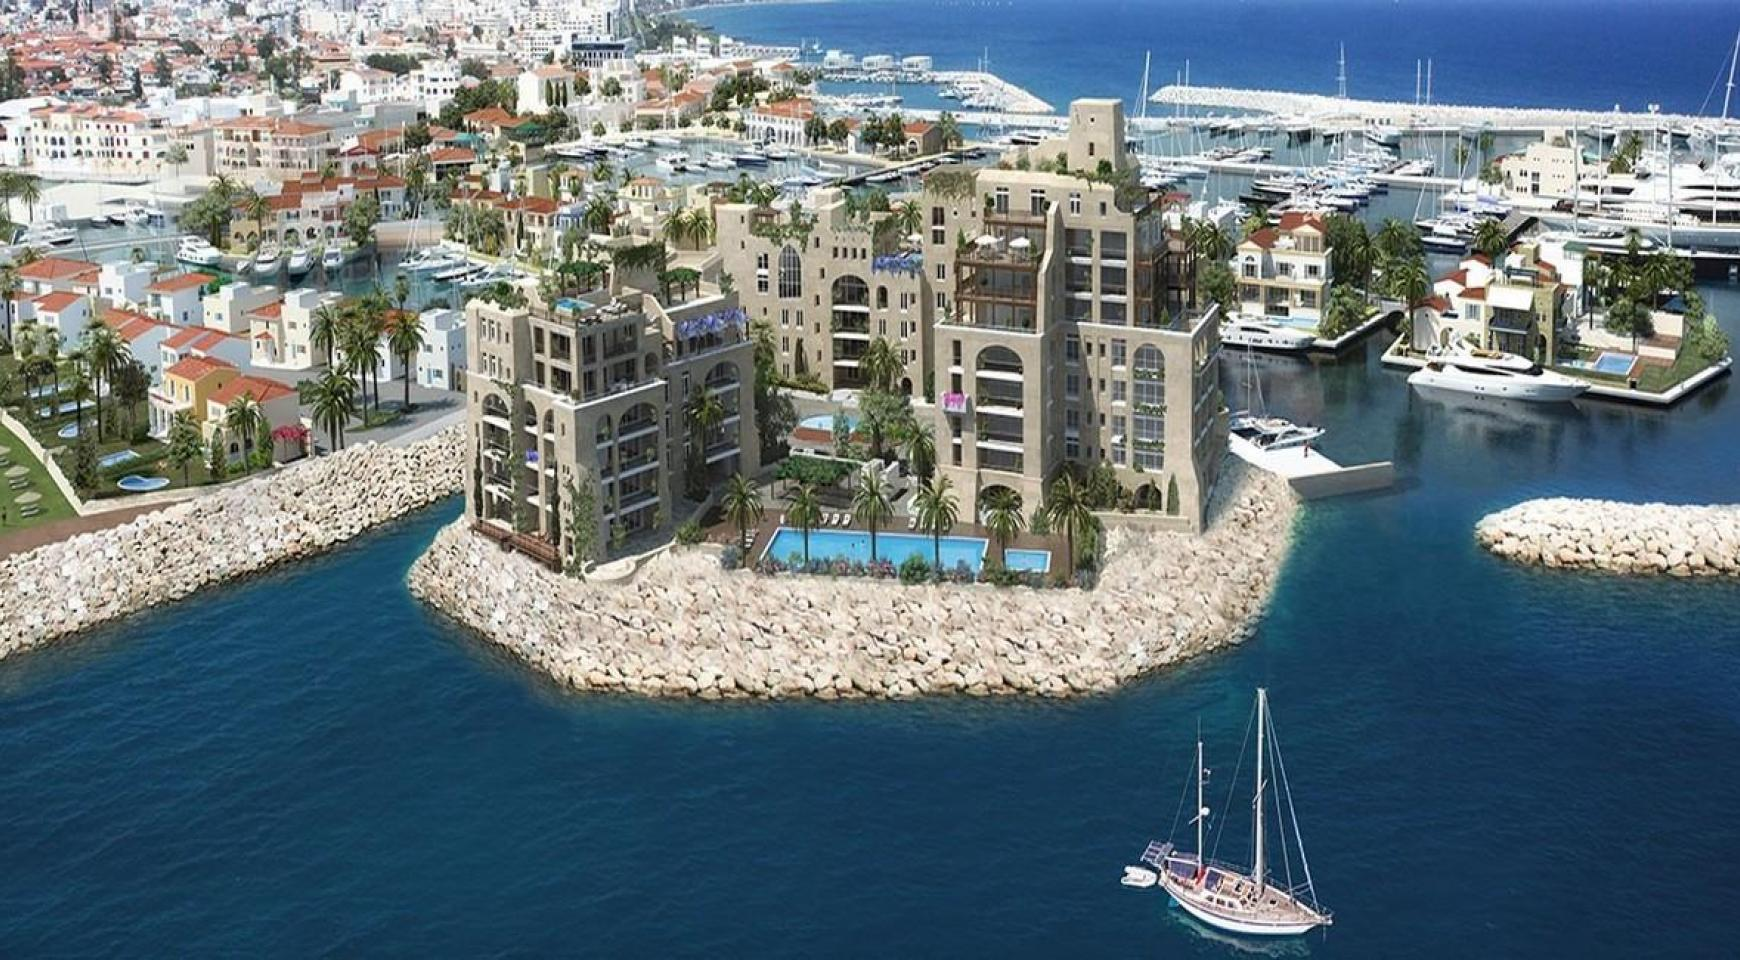 2 Bedroom Apartment in an Exclusive Project on the Sea - 2